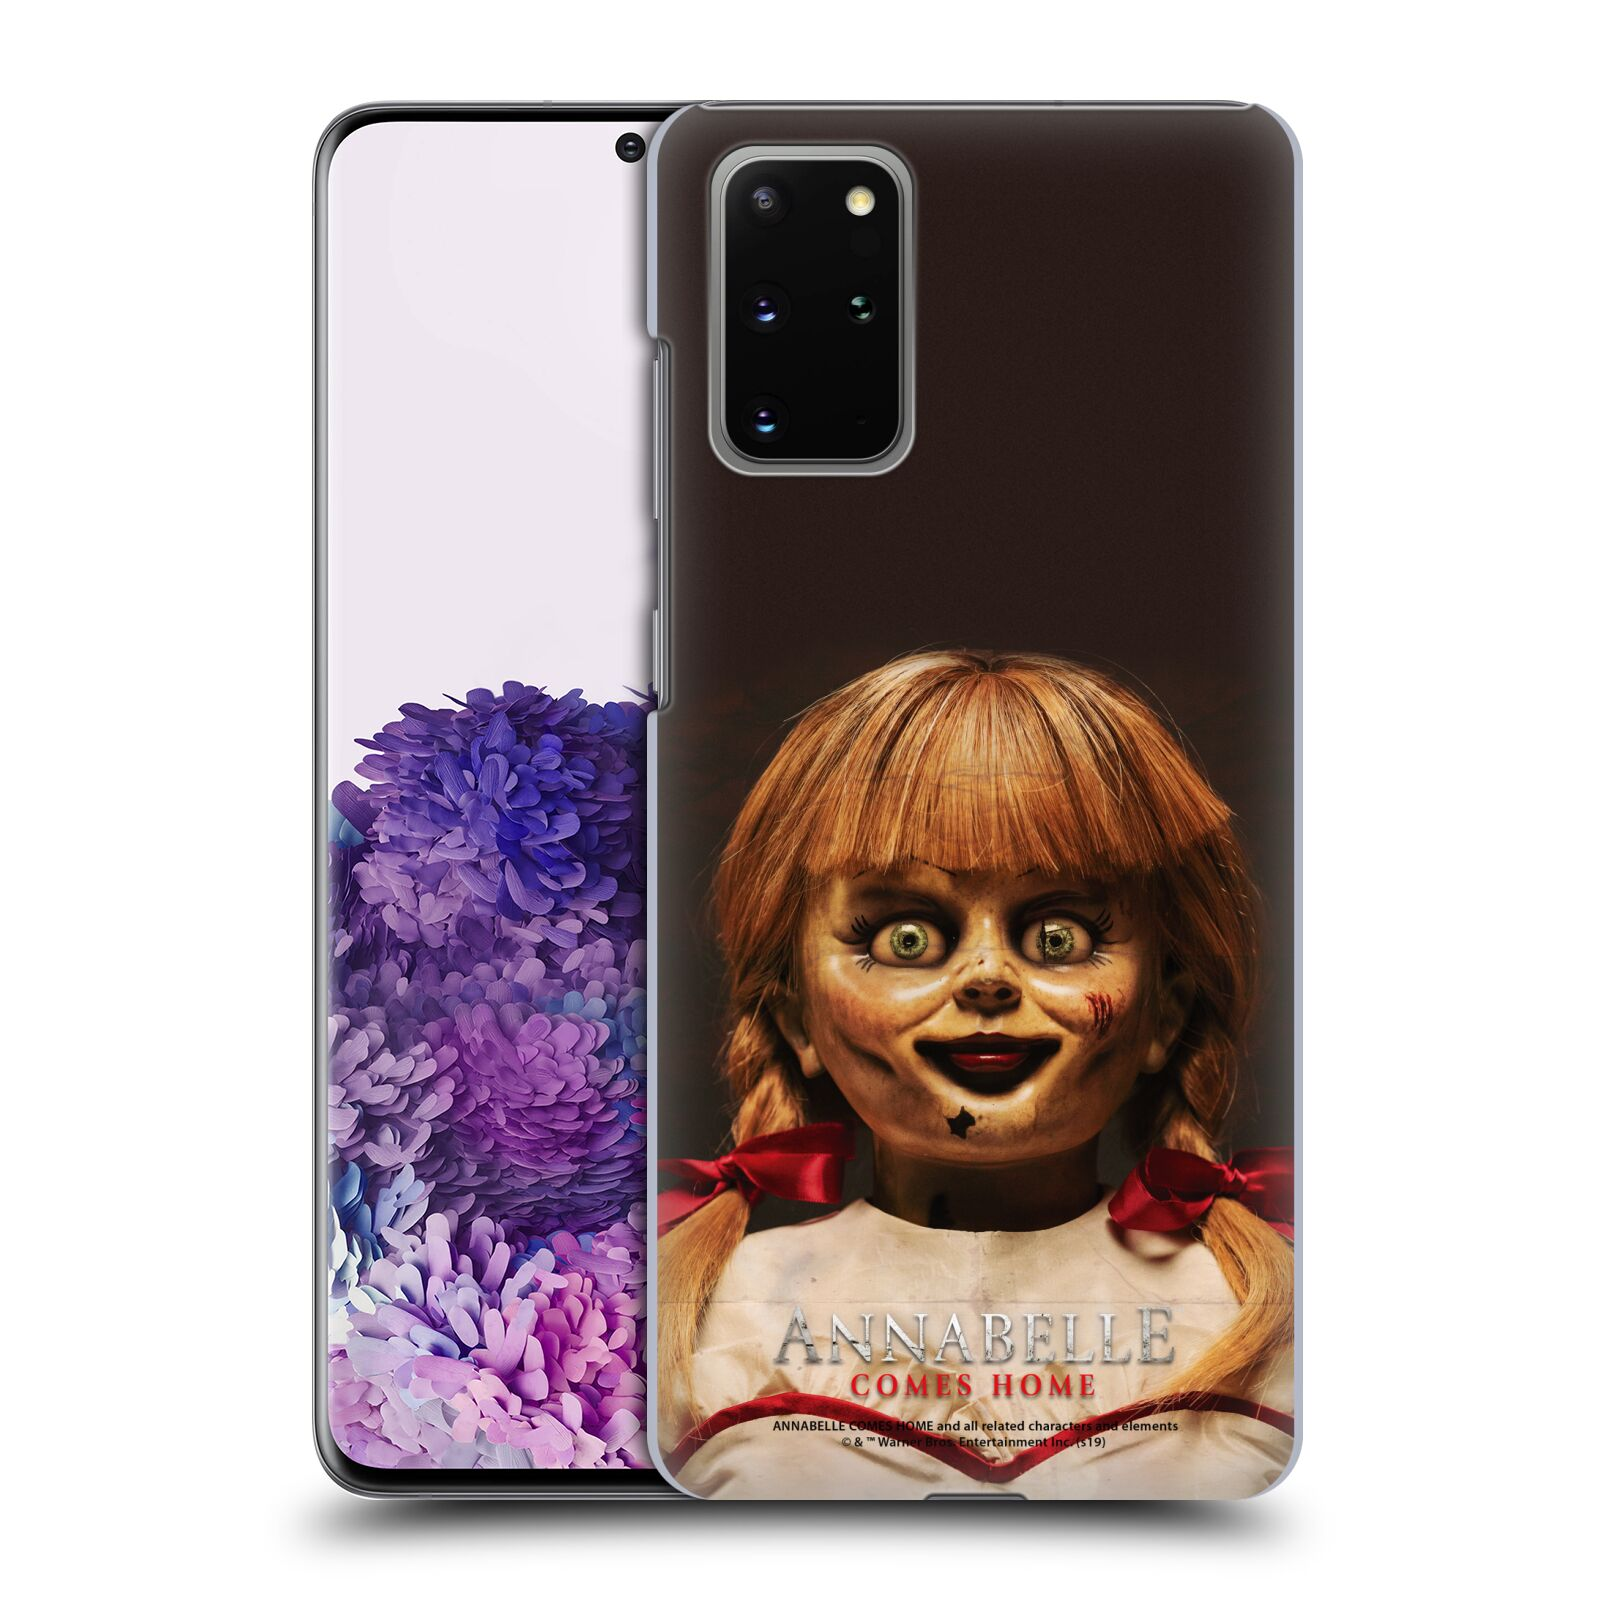 Official Annabelle Comes Home Doll Photography Portrait Case for Samsung Galaxy S20+ / S20+ 5G